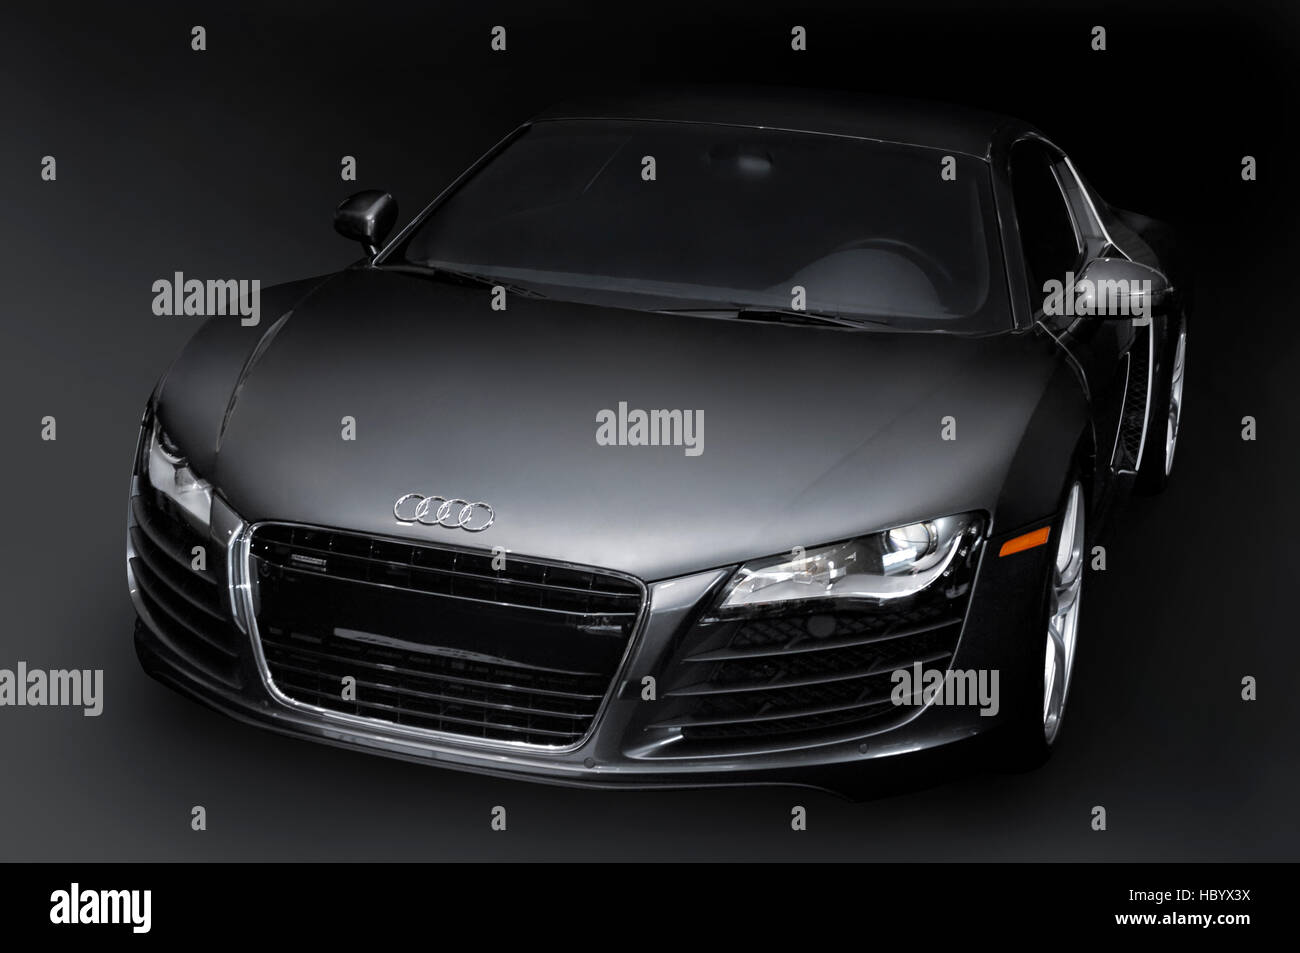 Pearl black Audi R8, a mid-engined German sports car - Stock Image